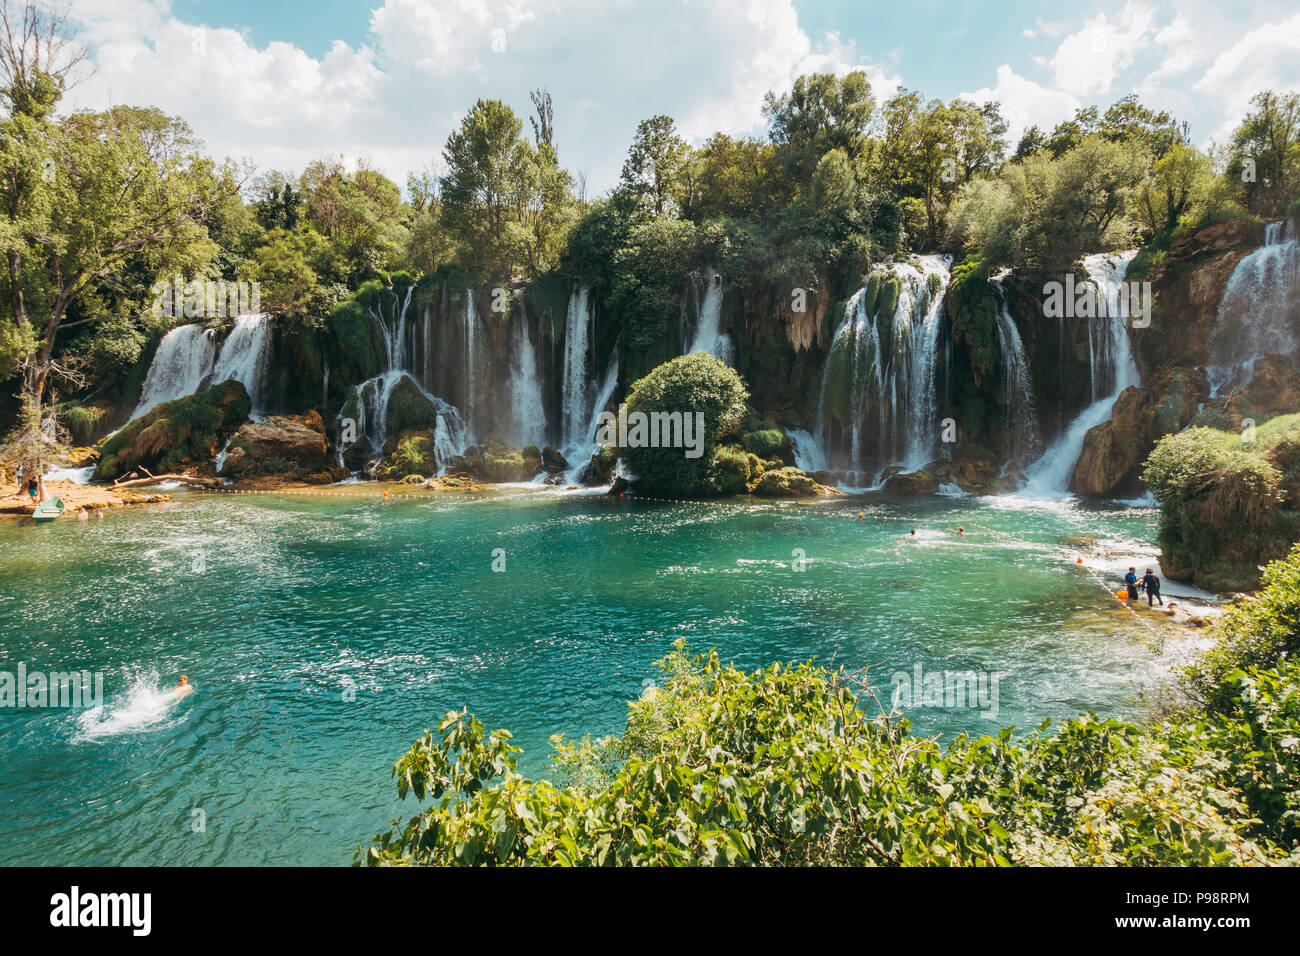 Kravica waterfall - a tufa cascade in Bosnia and Herzegovina, attracts many tourists for a refreshing dip to escape the summer heat - Stock Image